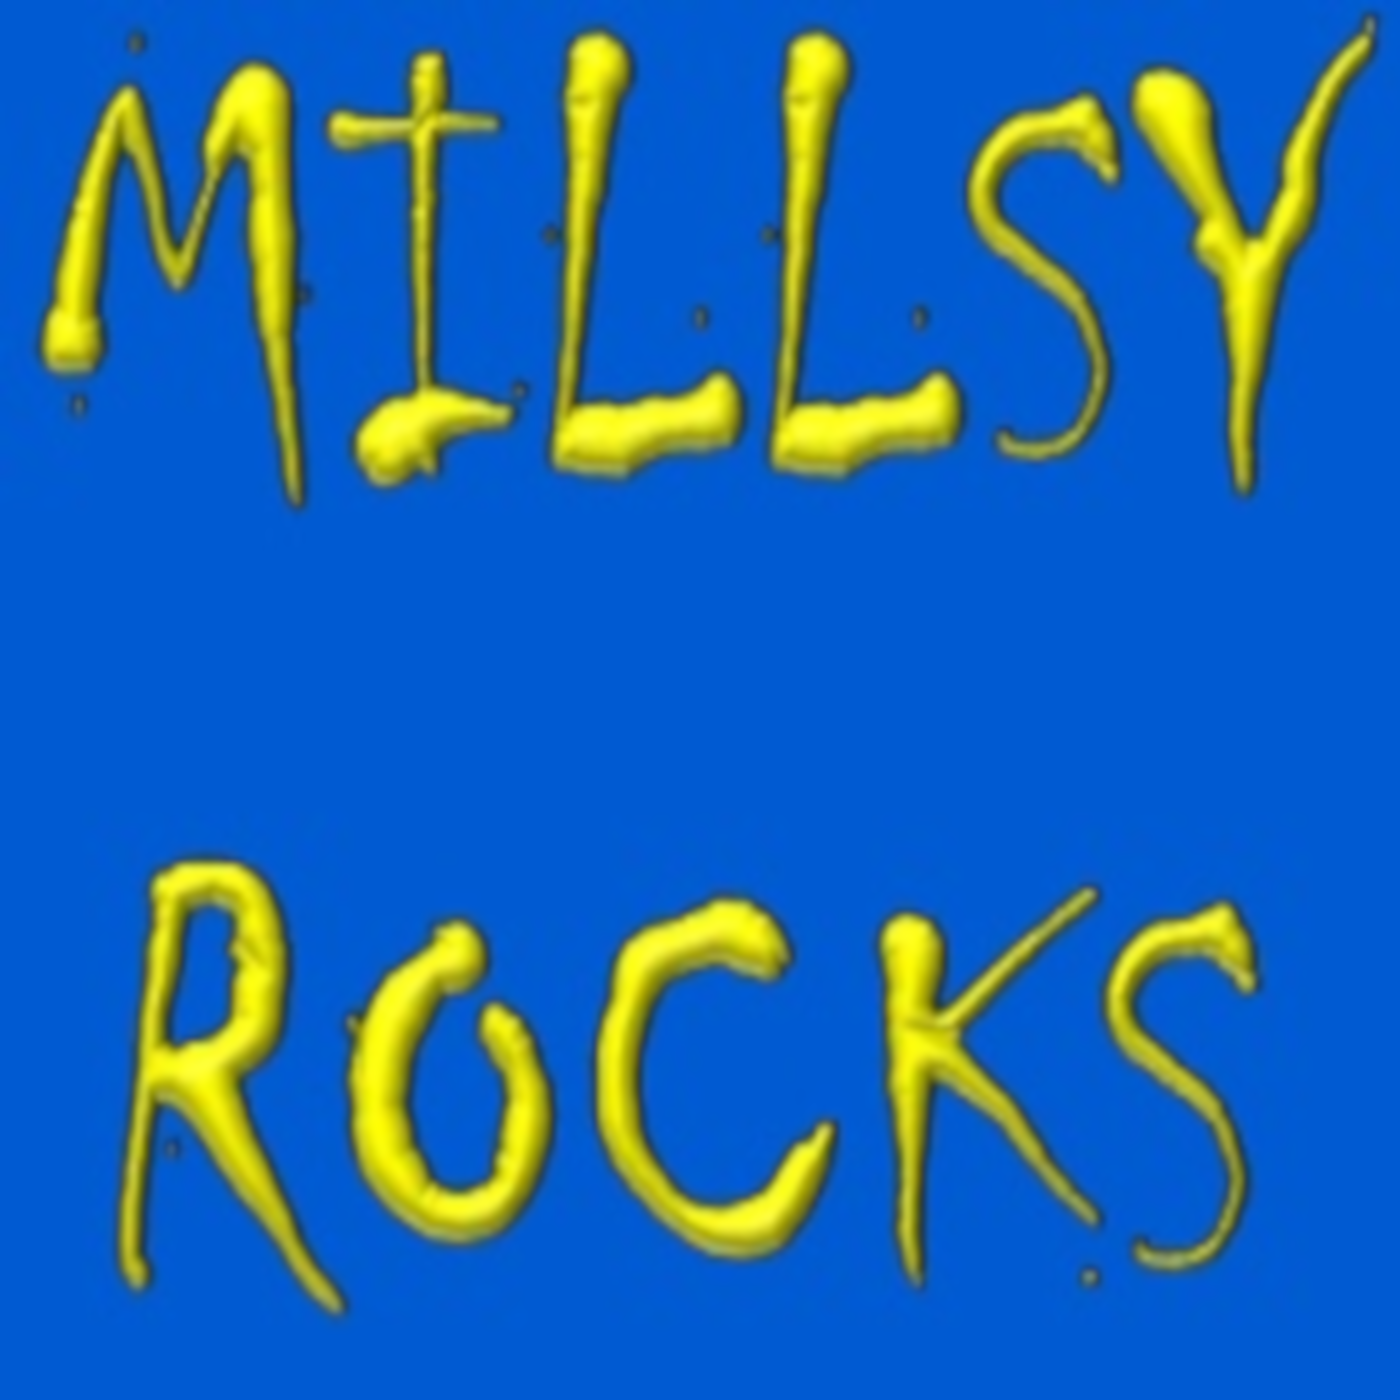 Millsy Rocks - Carl Mills Rock Metal Show-19-10-2018